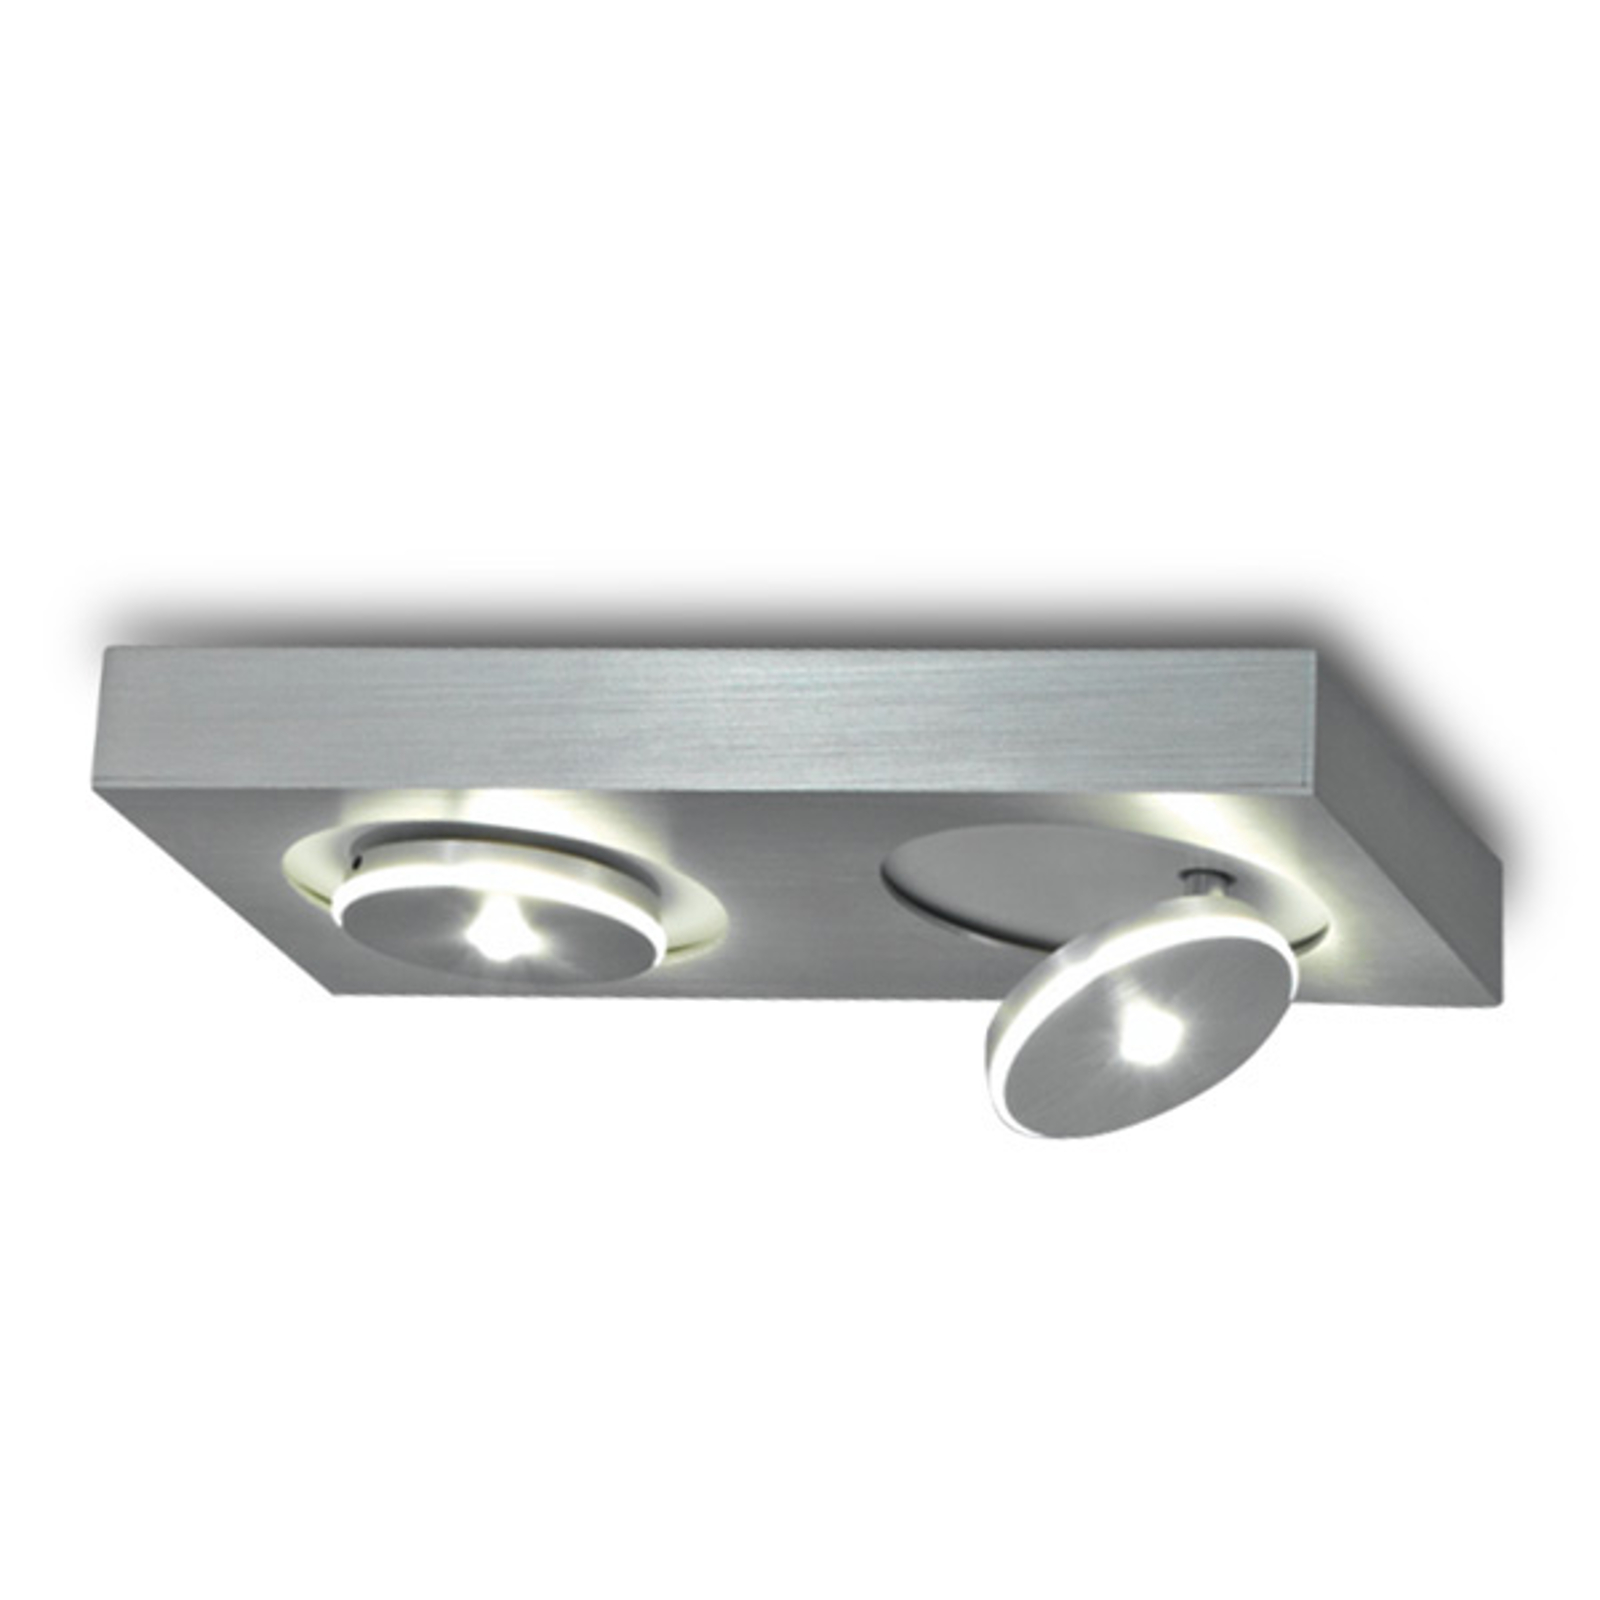 Modern ceiling light Spot It with LED_3051072_1